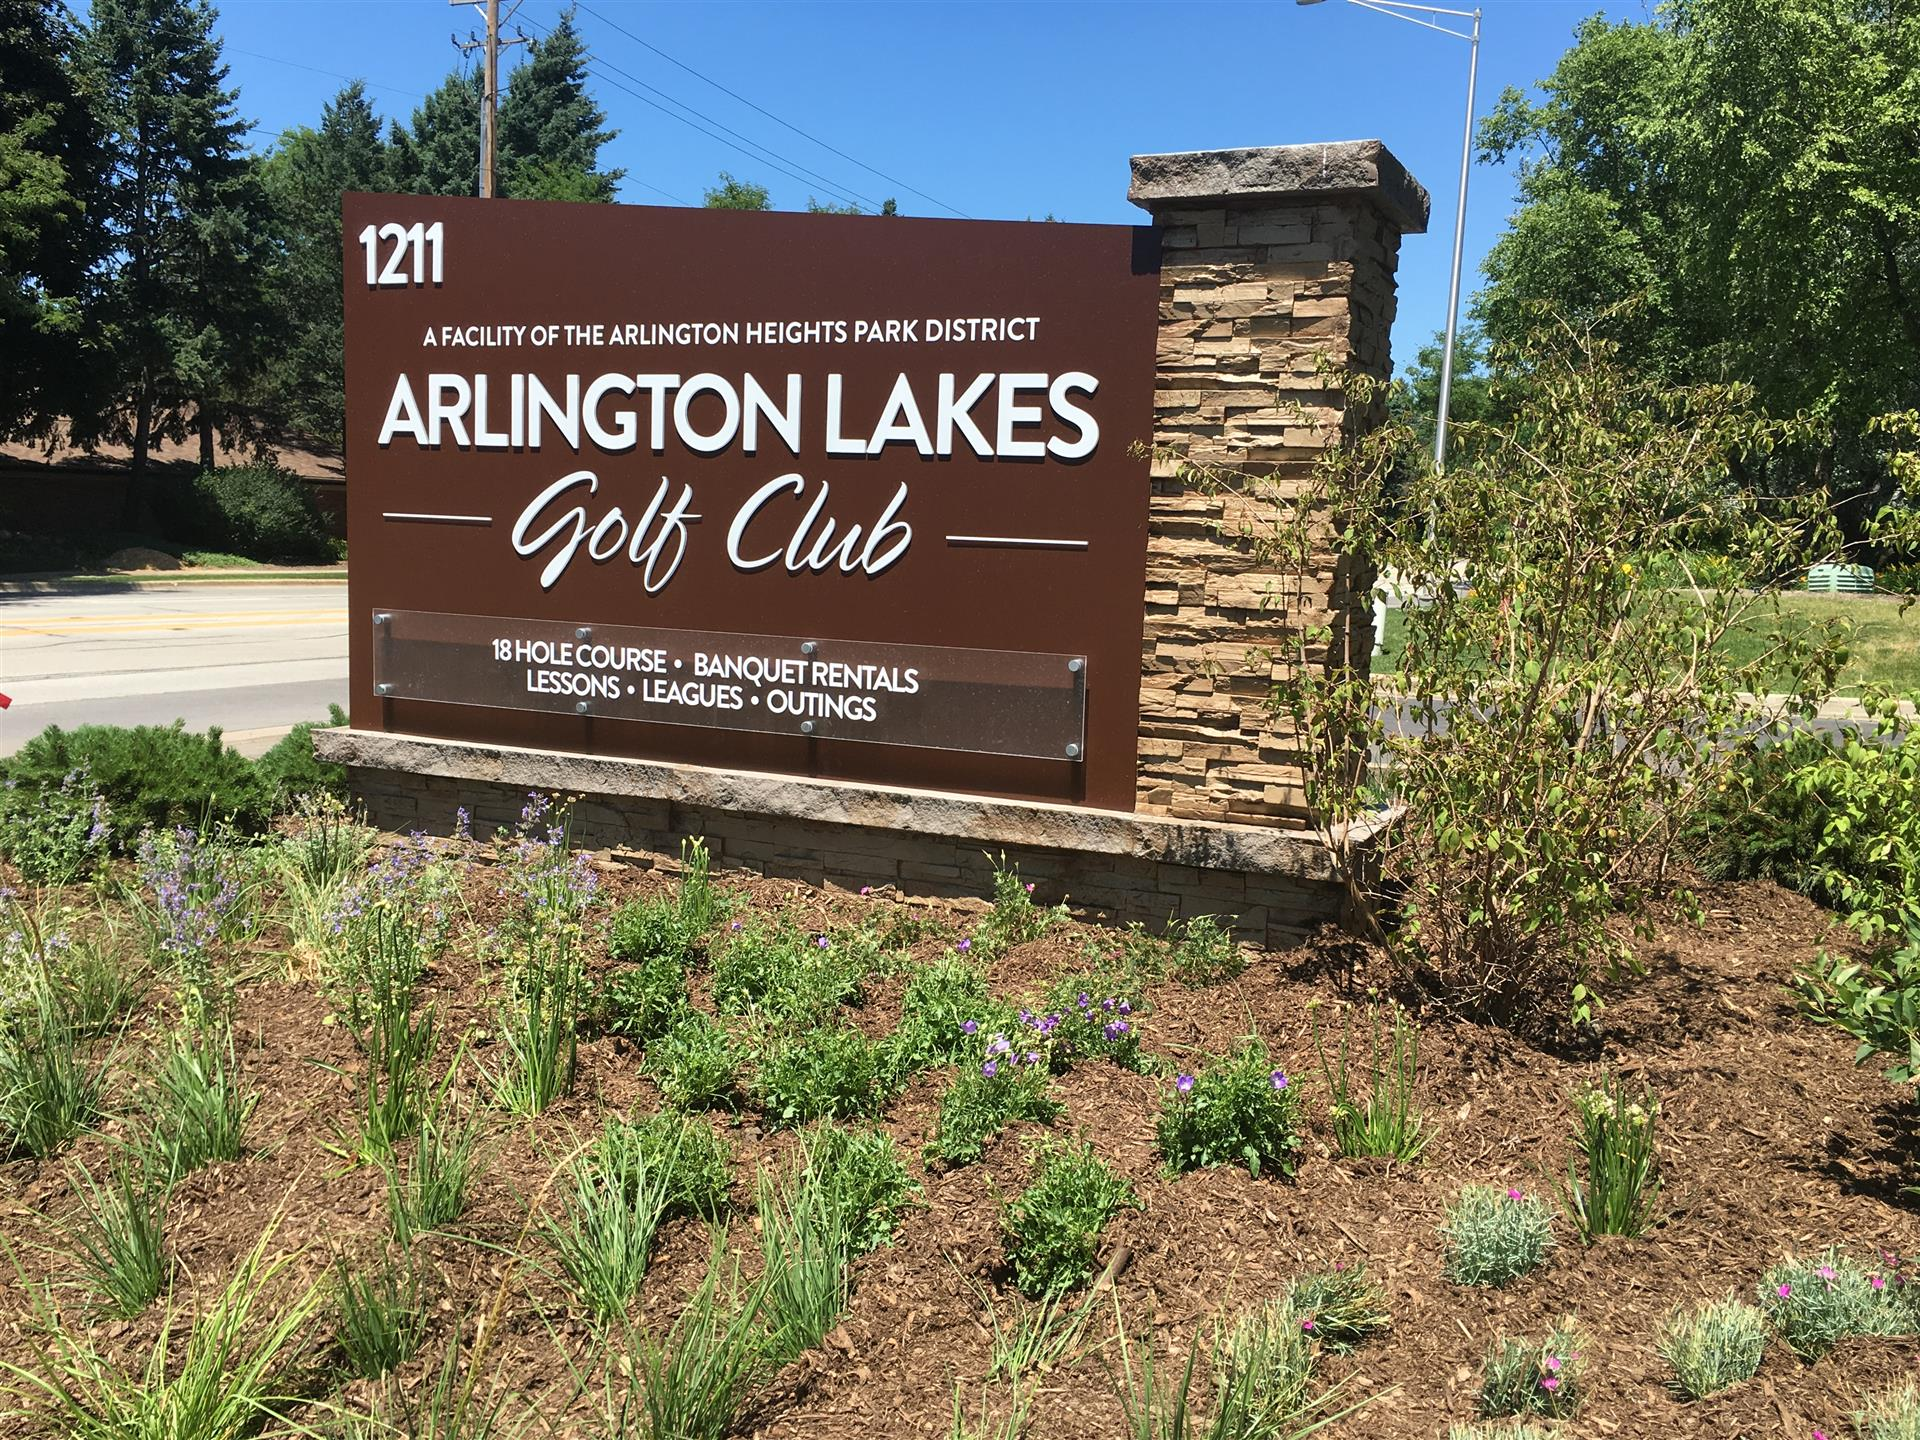 Arlington Lakes Golf Club Monument Sign